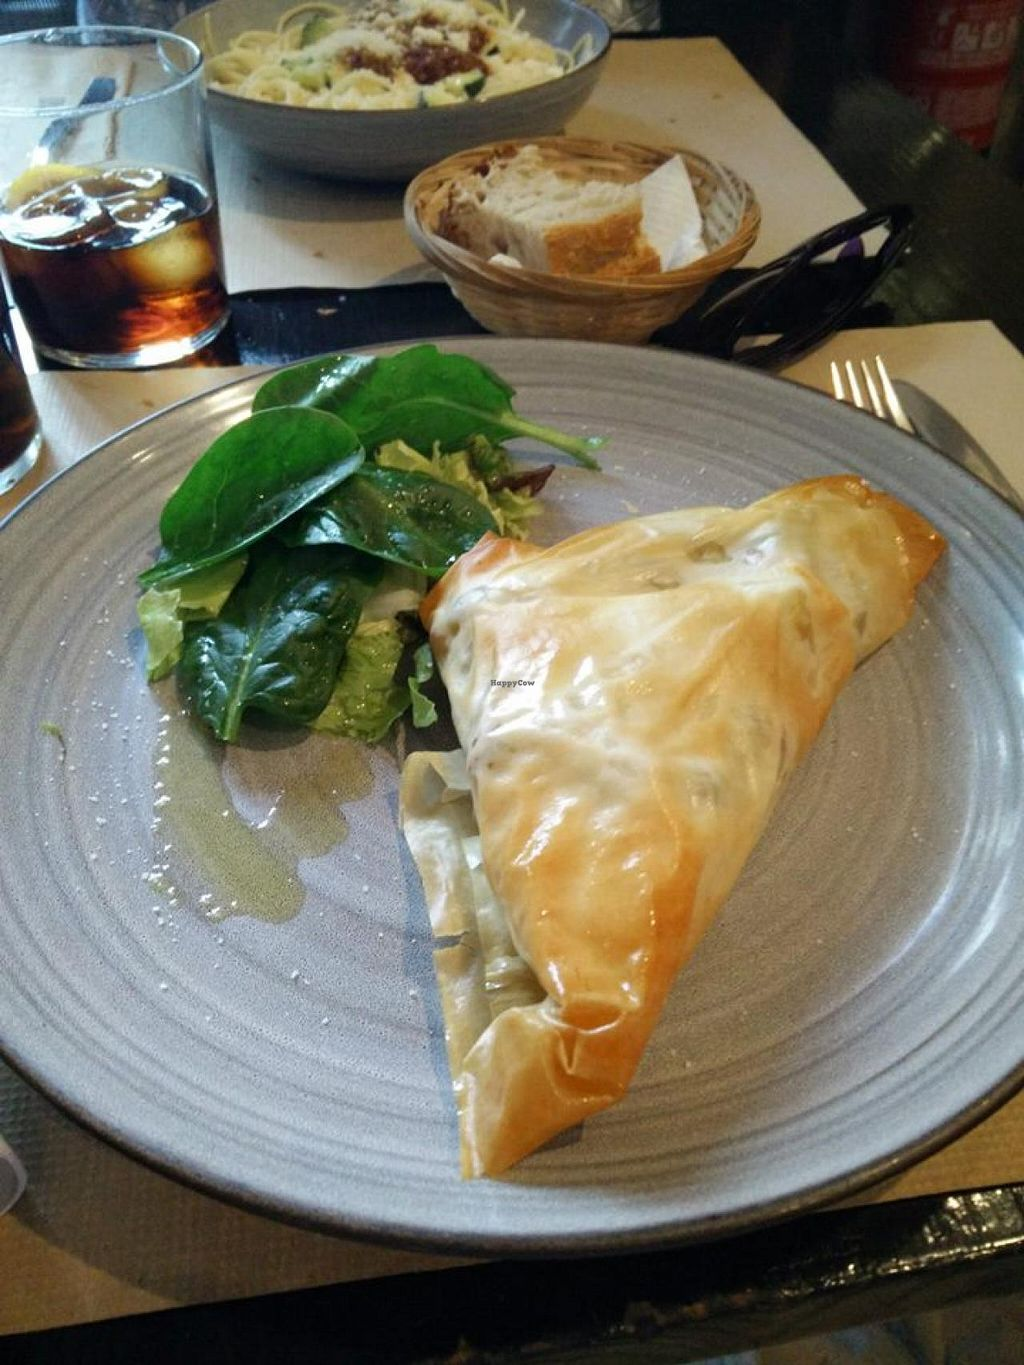 "Photo of Cocina Vegetariana Internacional  by <a href=""/members/profile/Meaks"">Meaks</a> <br/>Filo Pastry filled with Curried Vegetables <br/> May 27, 2015  - <a href='/contact/abuse/image/25635/103580'>Report</a>"